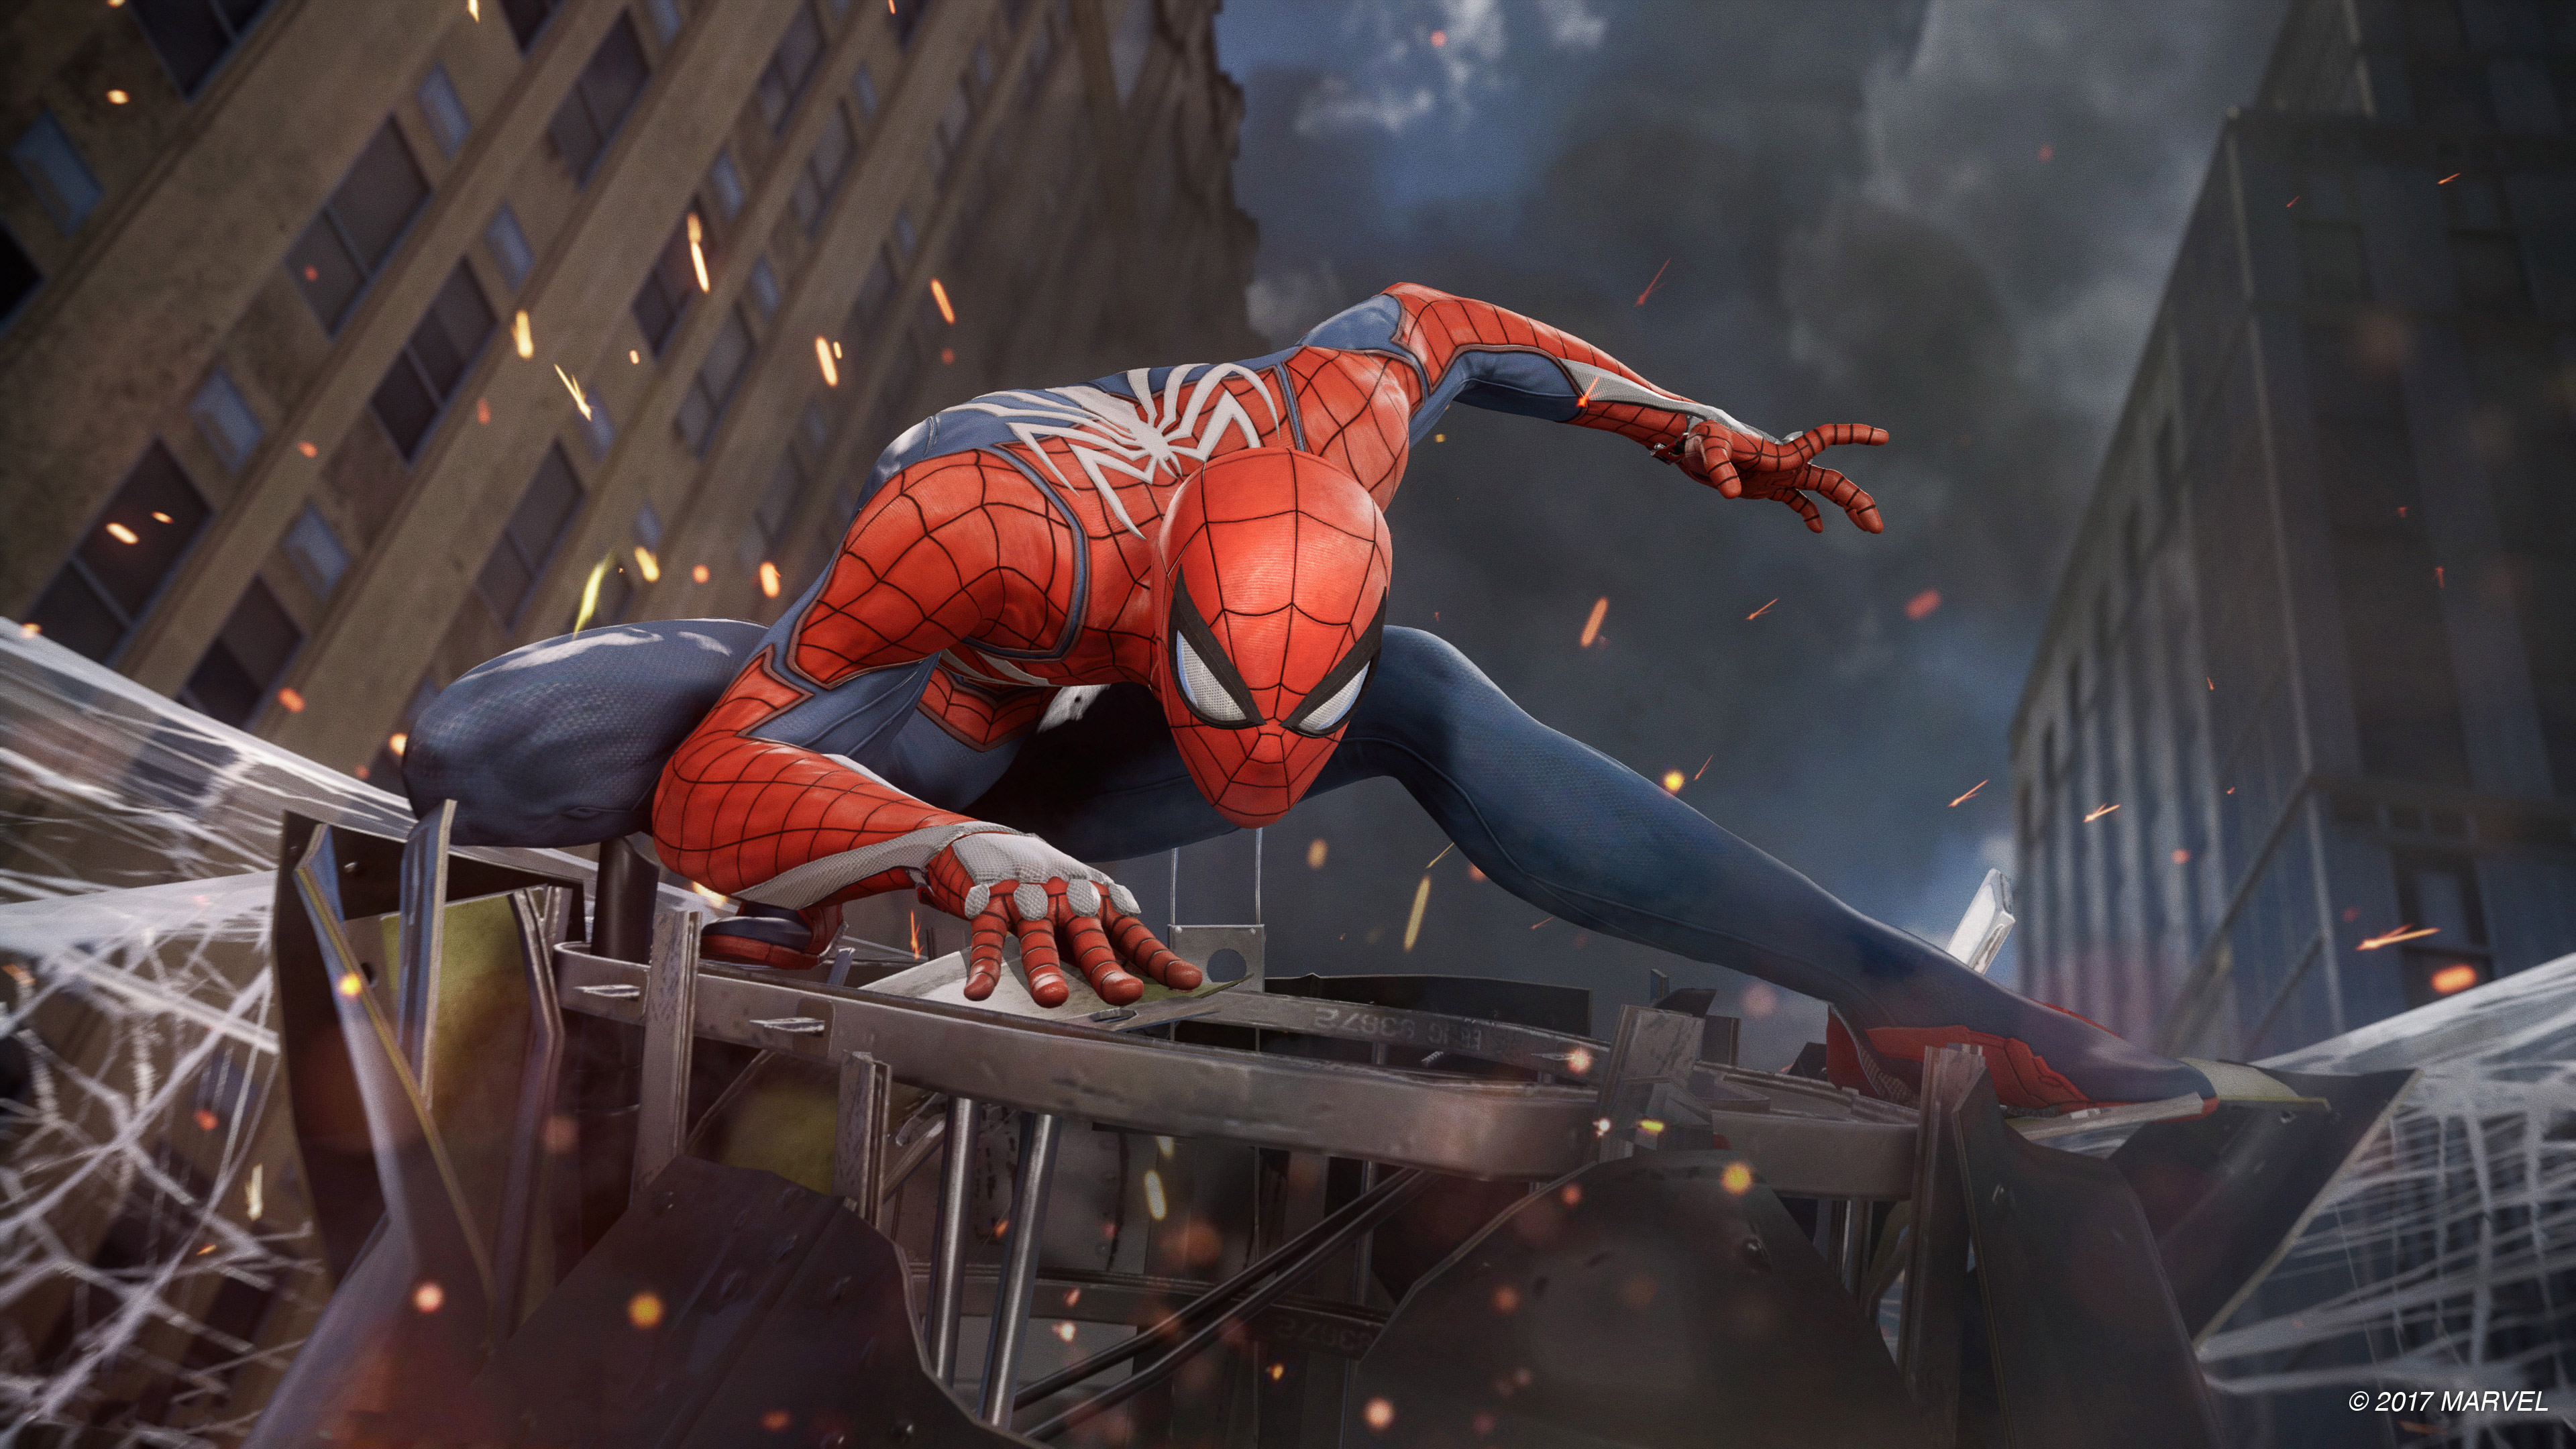 spiderman ps4 e3 2017 4k, hd games, 4k wallpapers, images